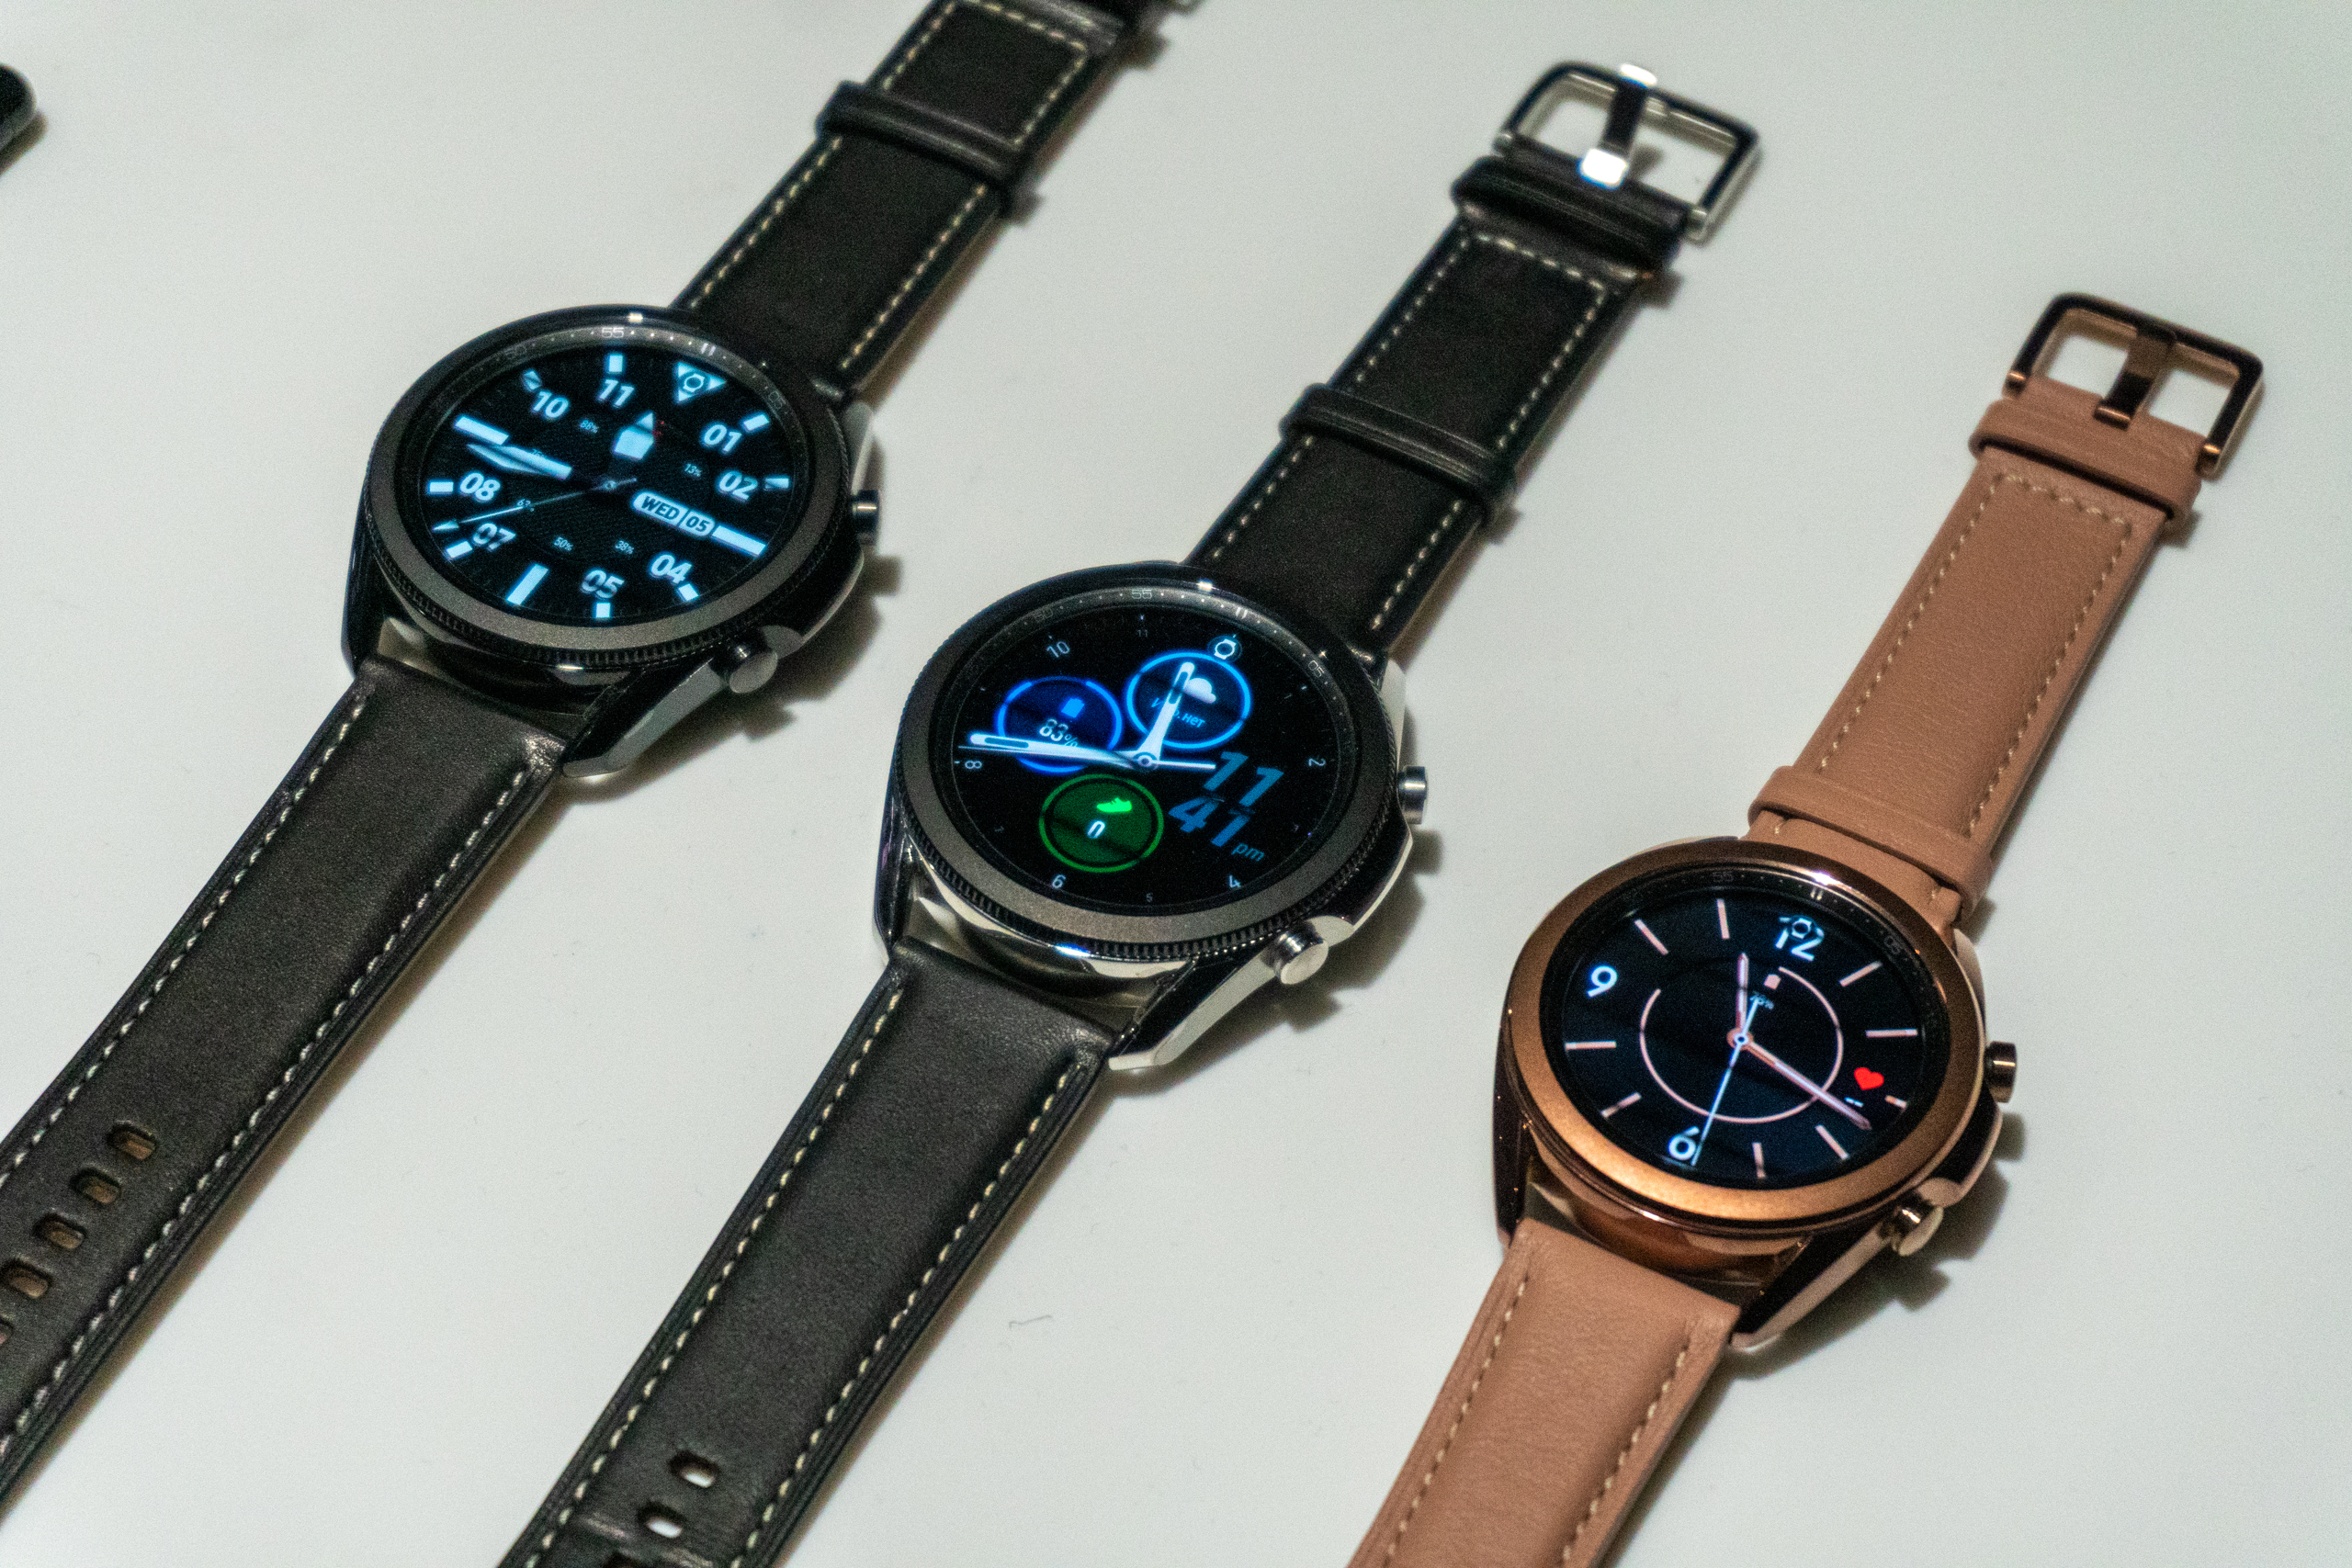 Samsung Galaxy watch 3 presented